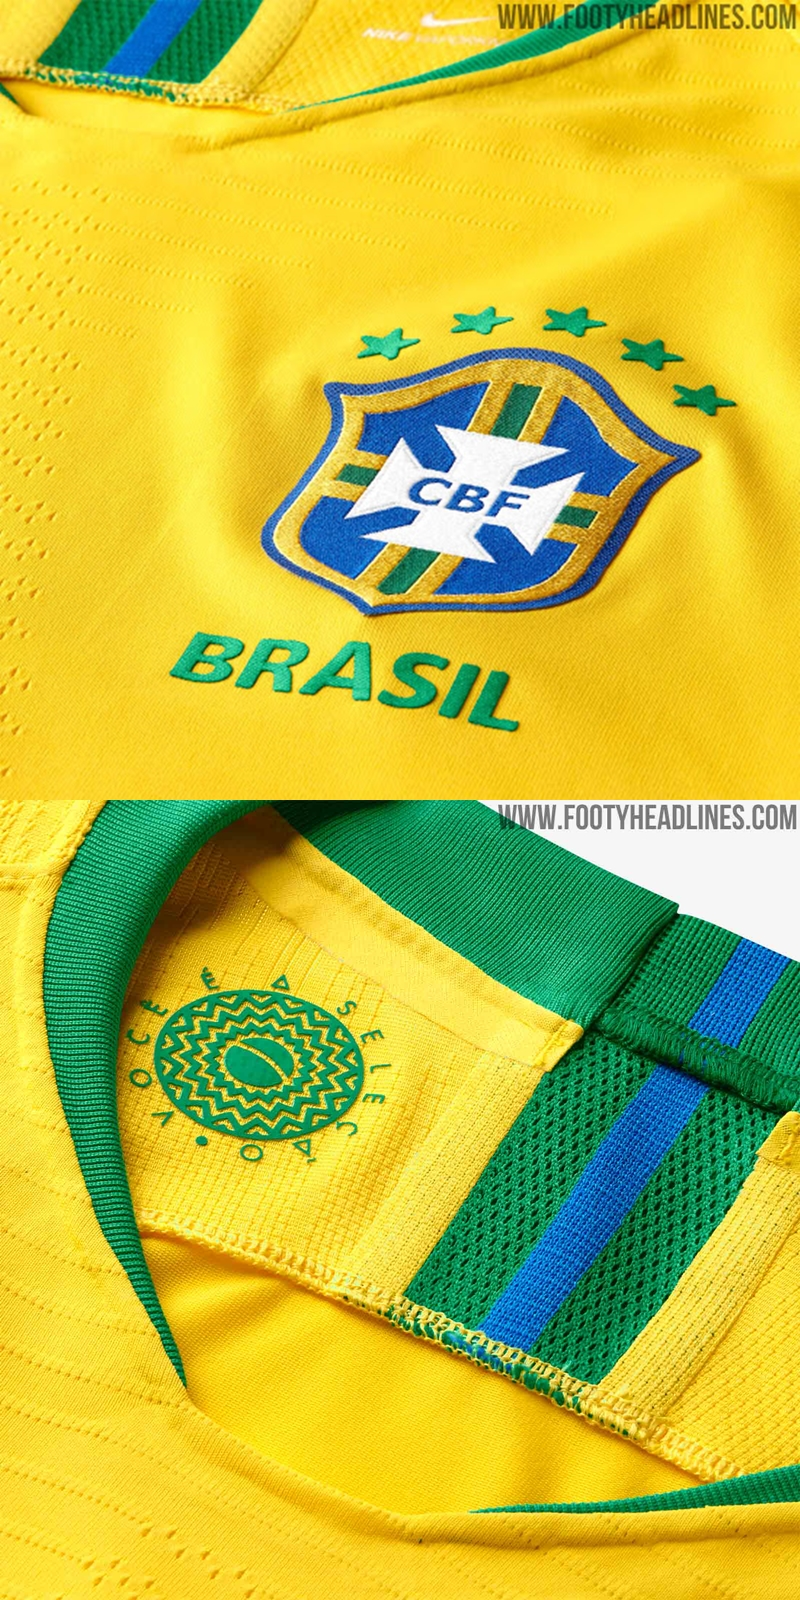 089259028 Brazil s kit manufacturers Nike have moved away from the